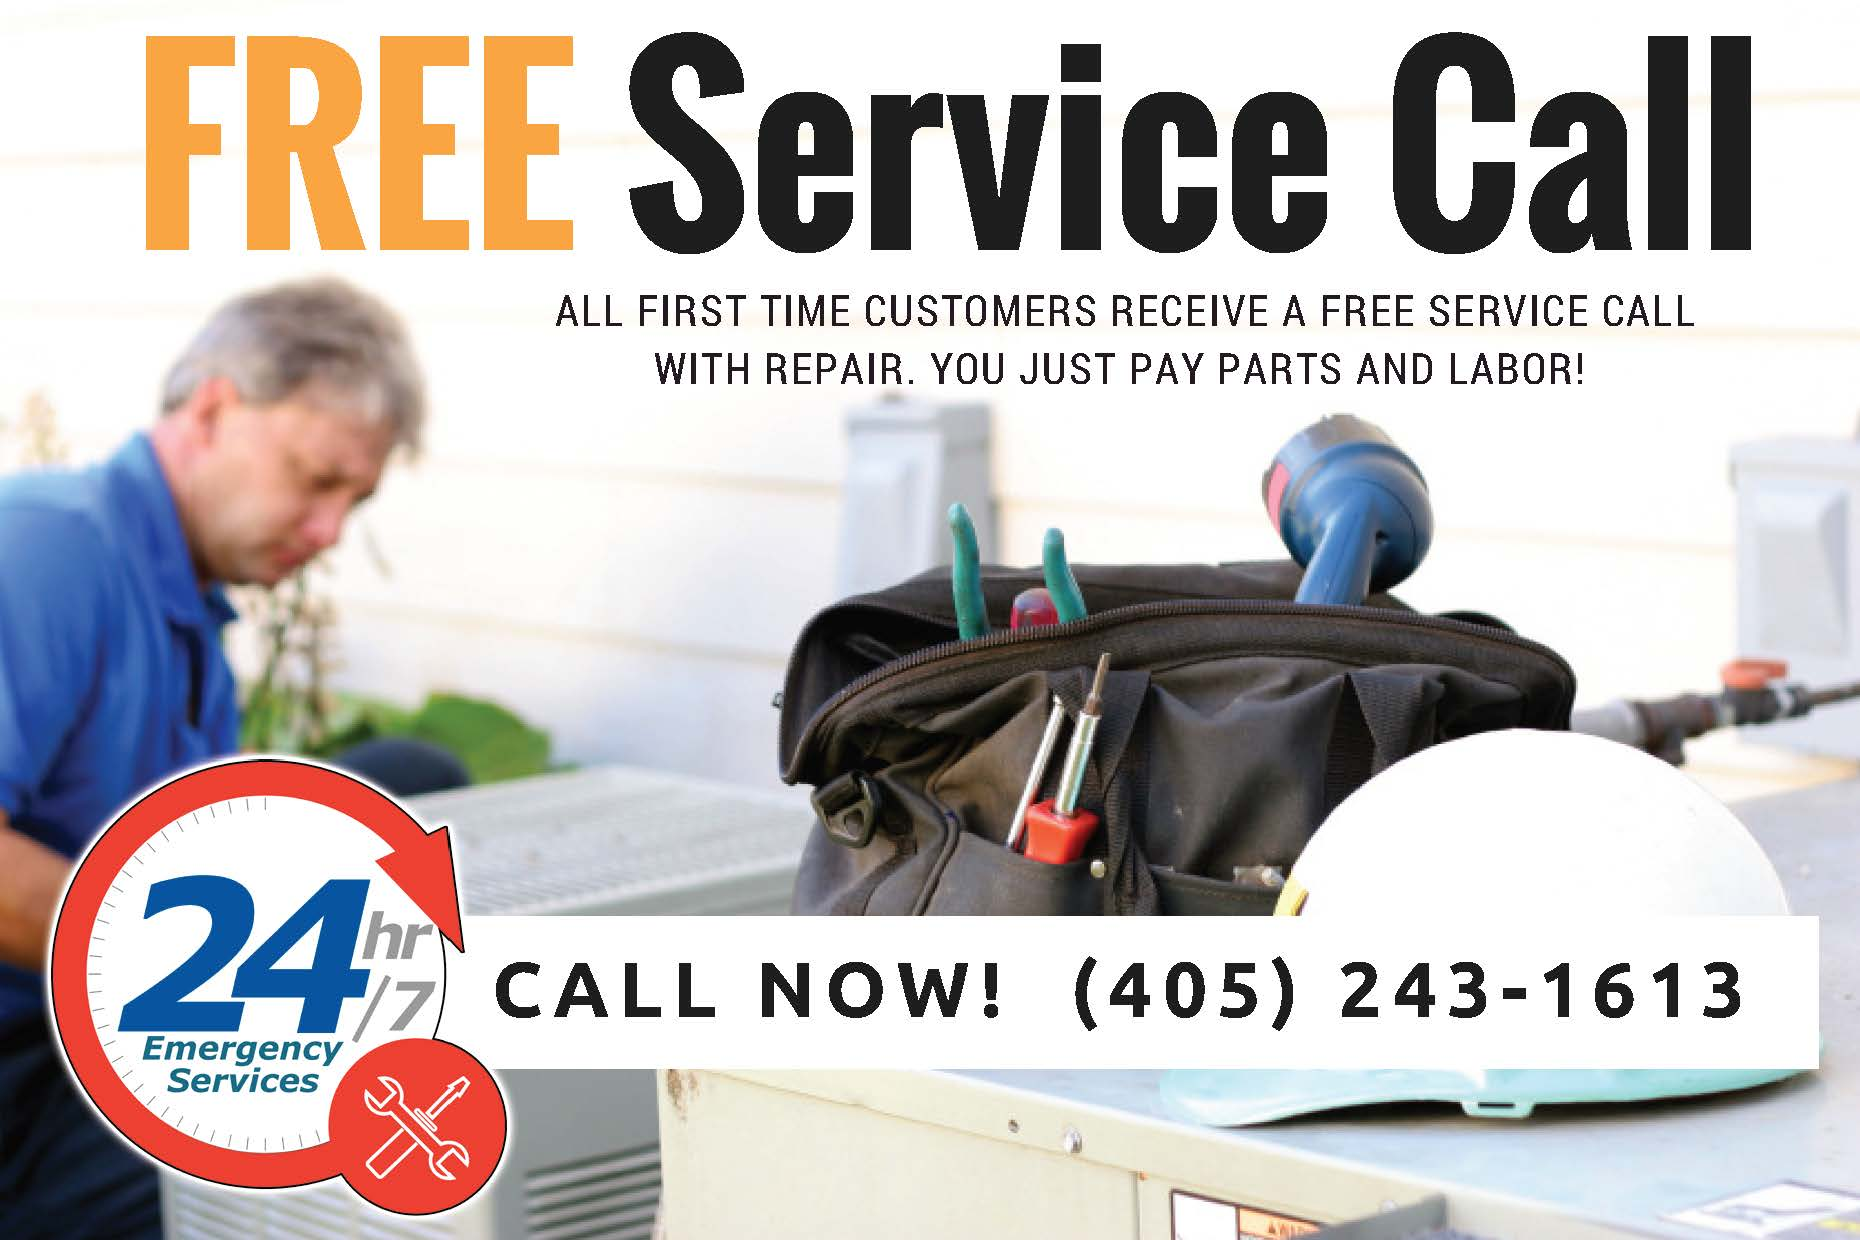 Free Heater or Furnace Service Call for Bethany Oklahoma Residents